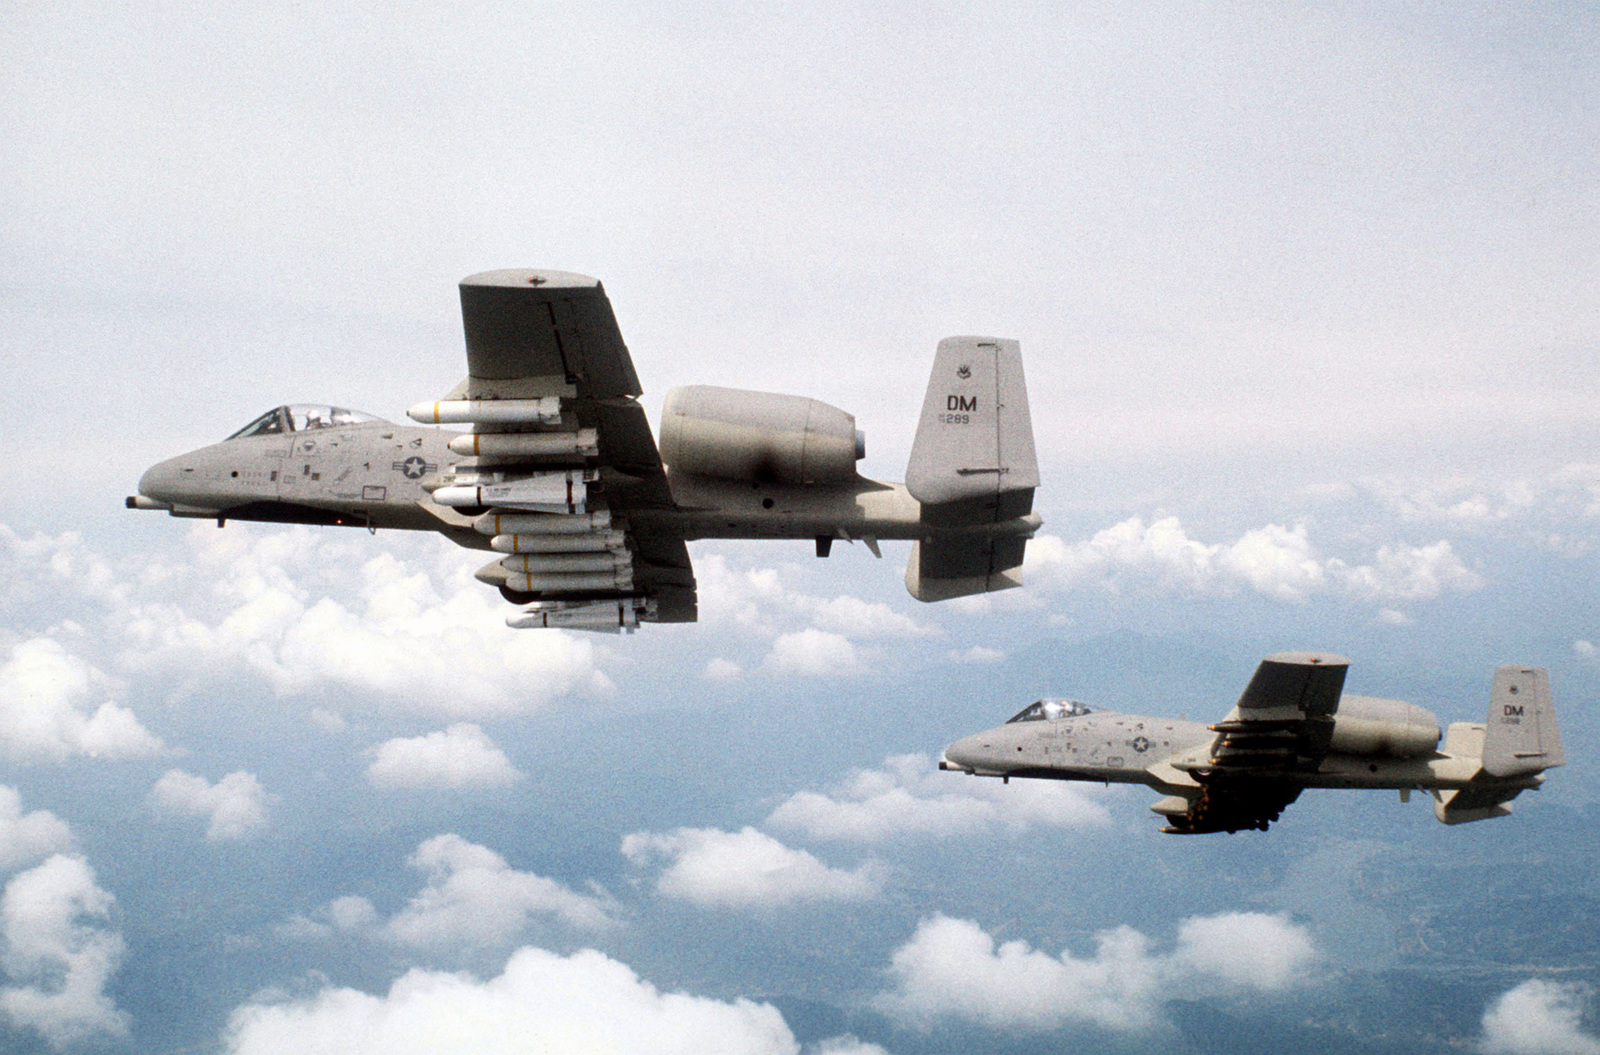 An air-to-air left underside view of two A-10 Thunderbolt II aircraft. The A-10 in the background is carrying a full load of Mark 82 Snake Eye bombs. The A-10 in the foreground is loaded with two Maverick missiles and eight Mark 20 MOD-3 Rock Eye bombs. Both aircraft, assigned to the 355th Tactical Fighter Wing, are on a tour of Korean air bases